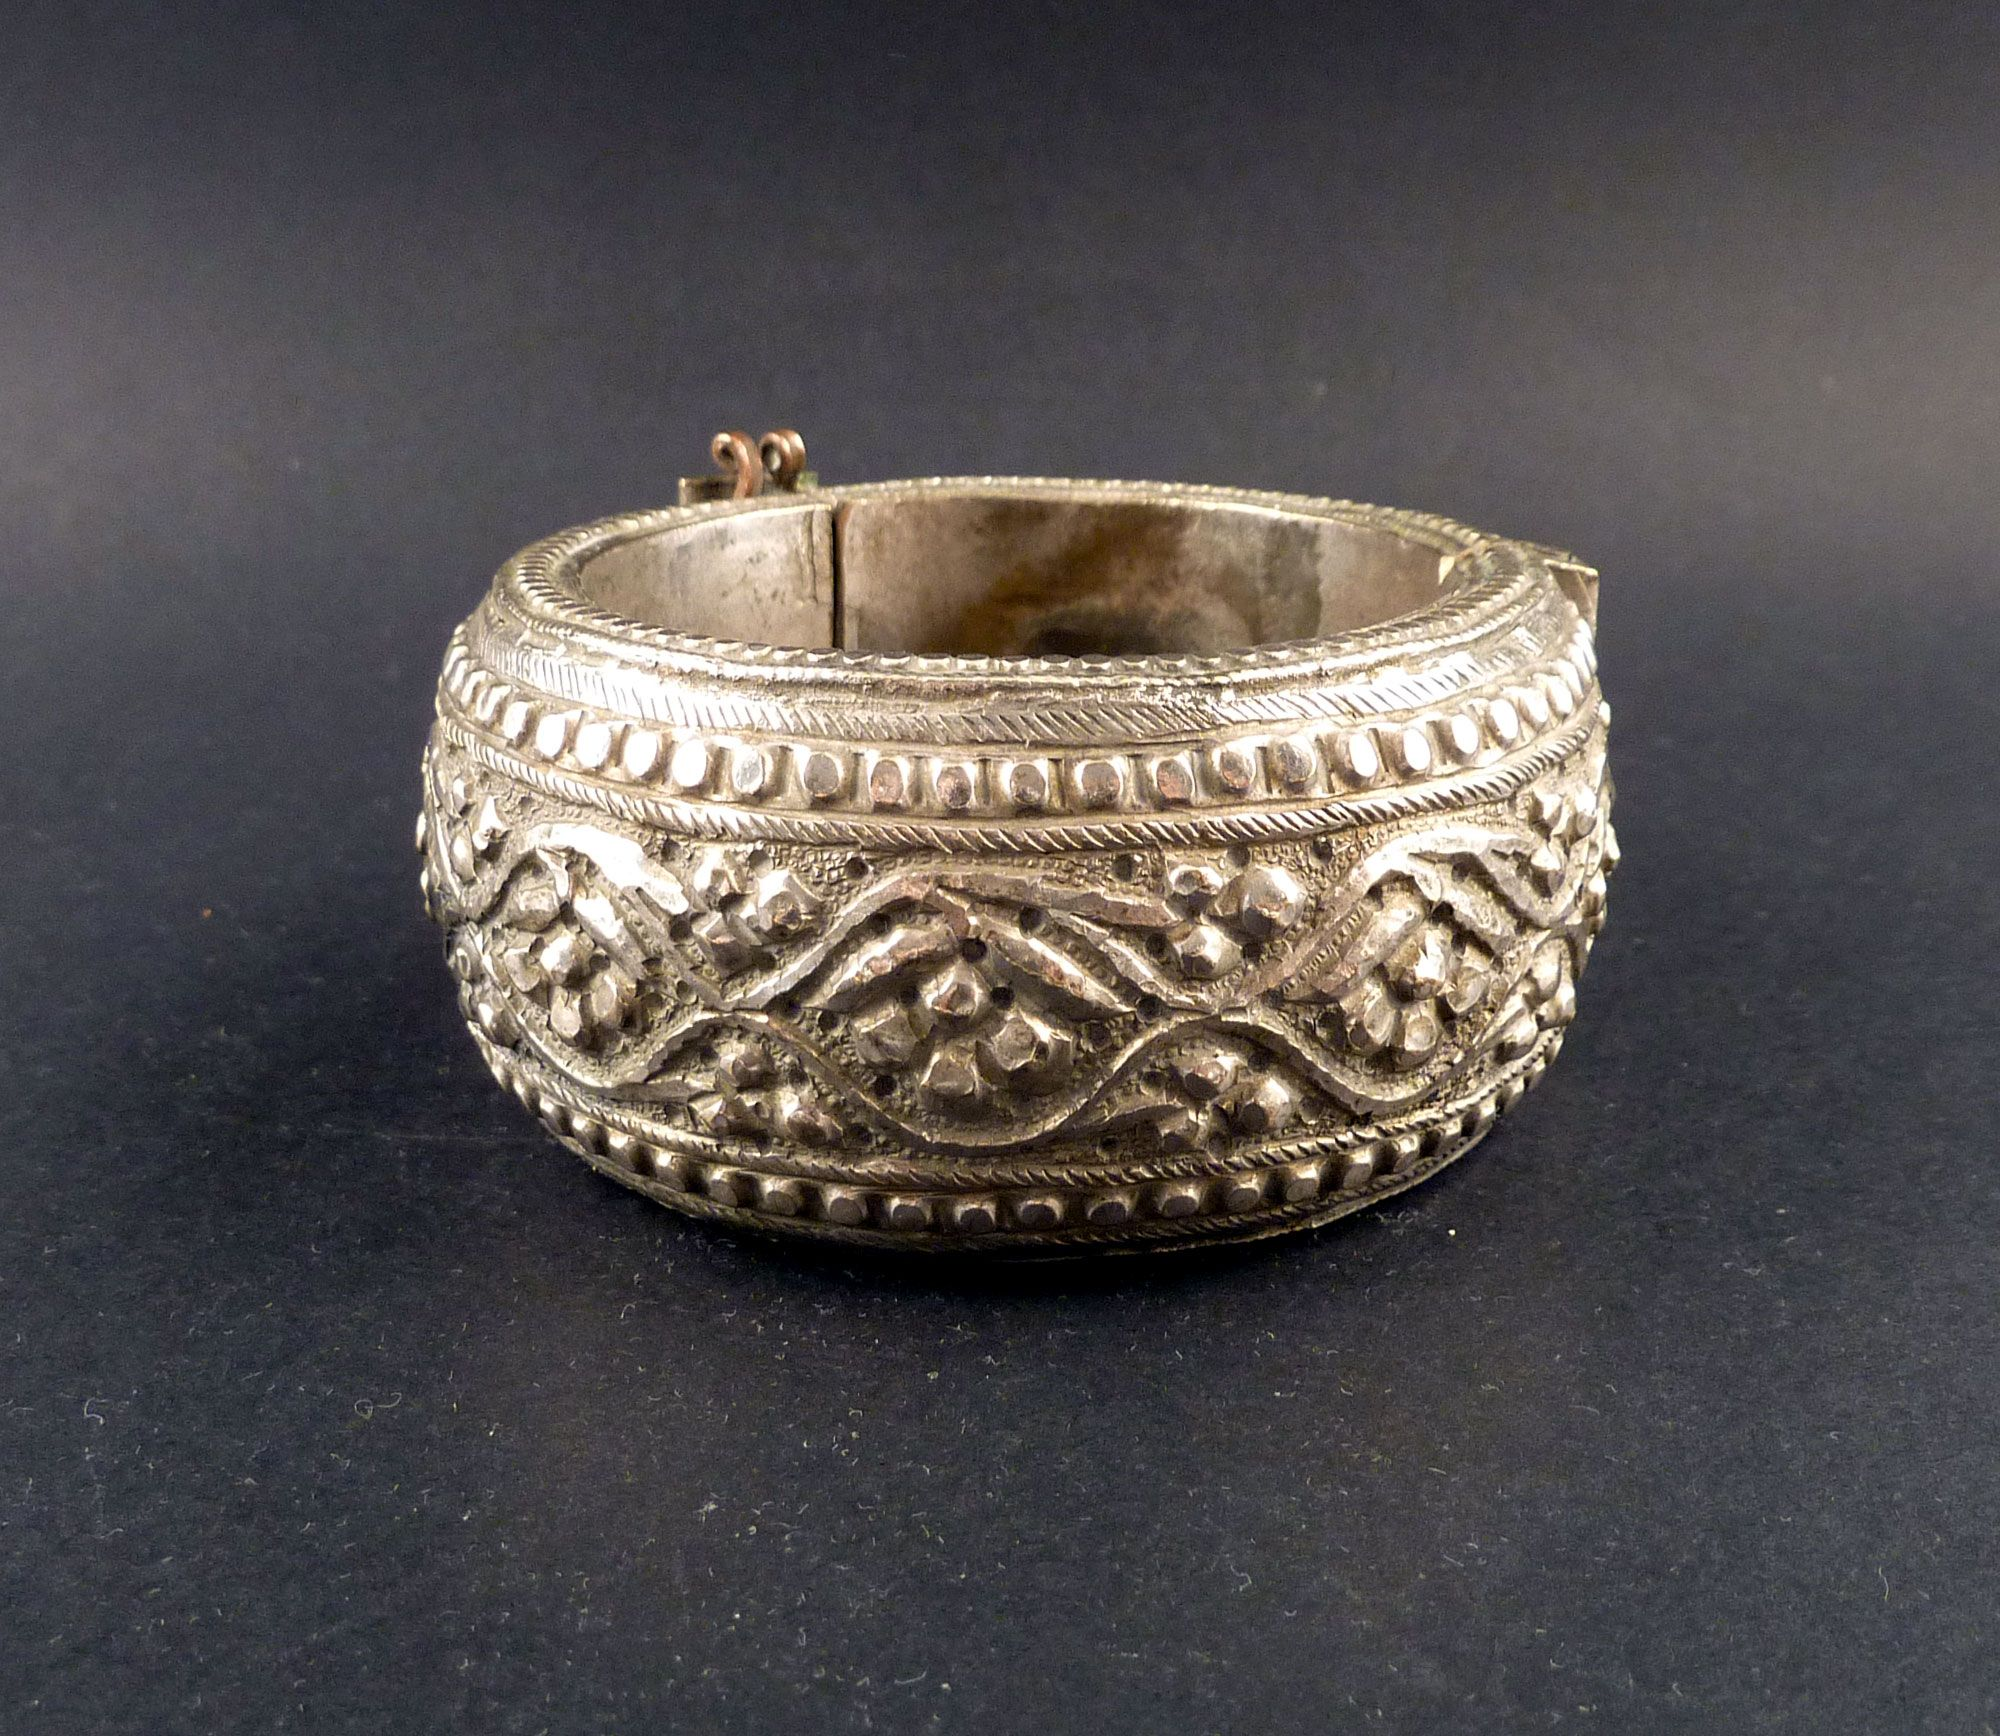 vintage img anteeka buy with hinge products silver for indian at bracelet tribal